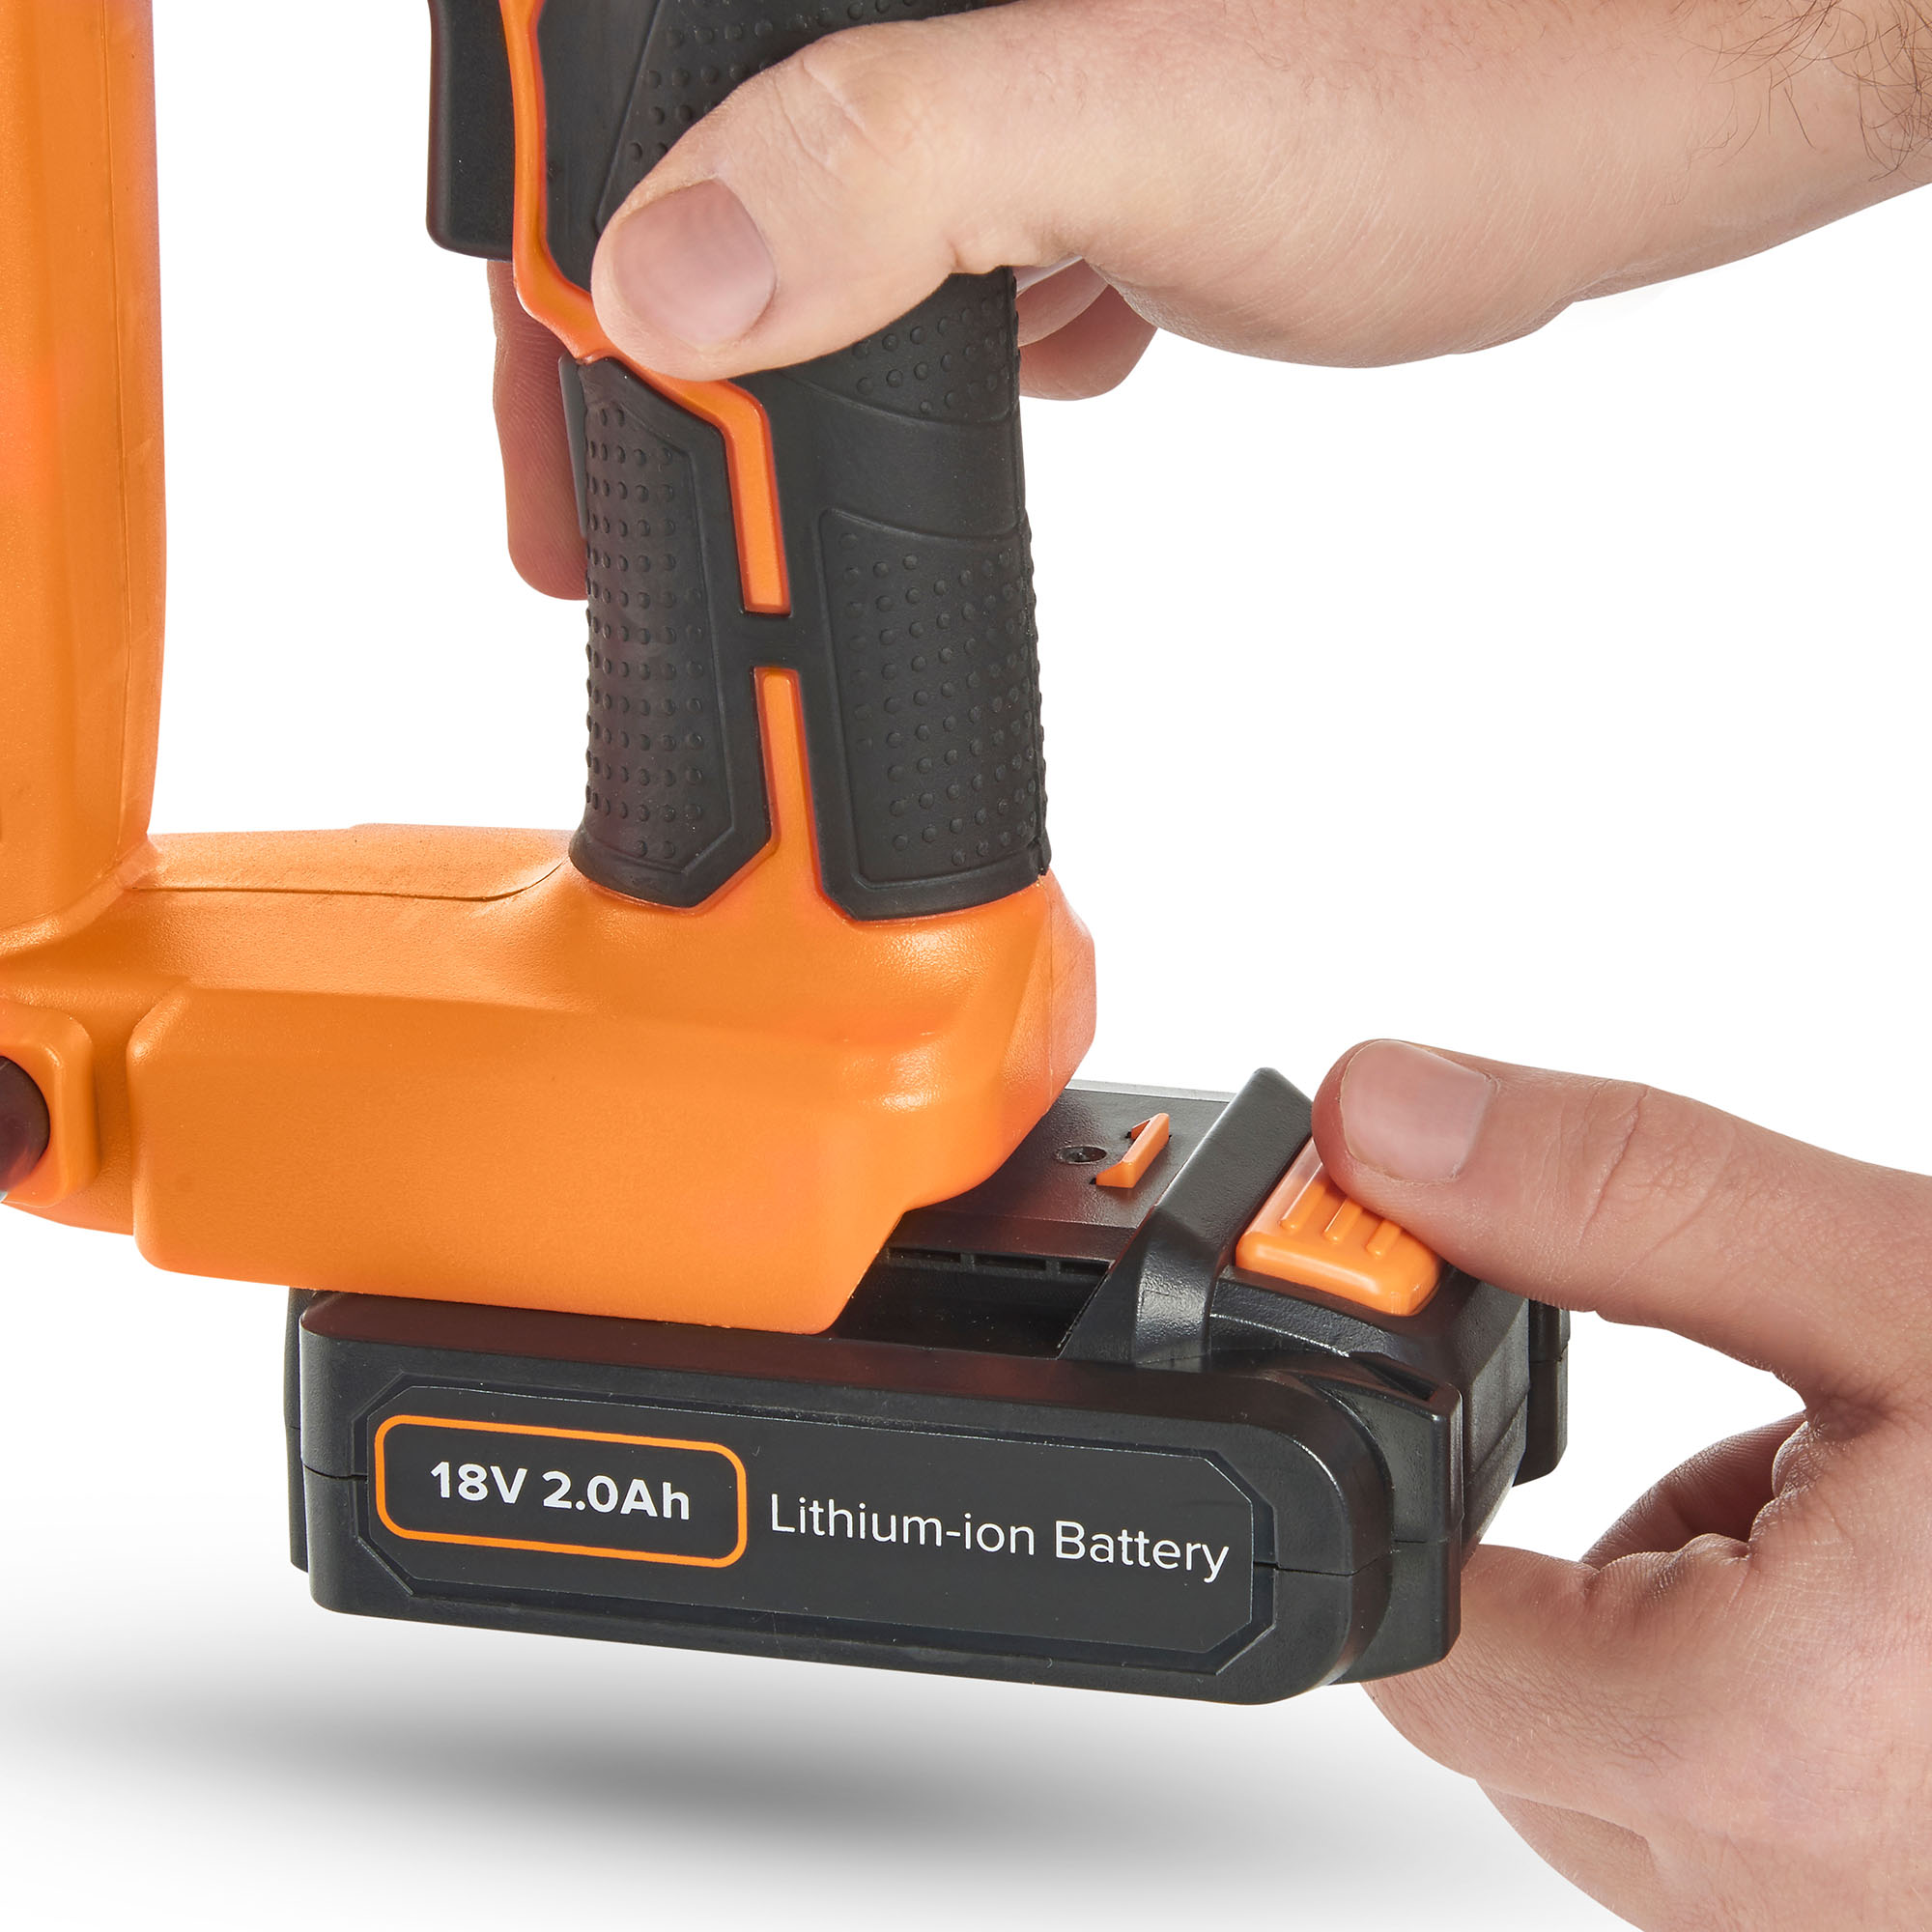 Vonhaus Nail Gun Amp Staple Gun Cordless Electric Heavy Duty